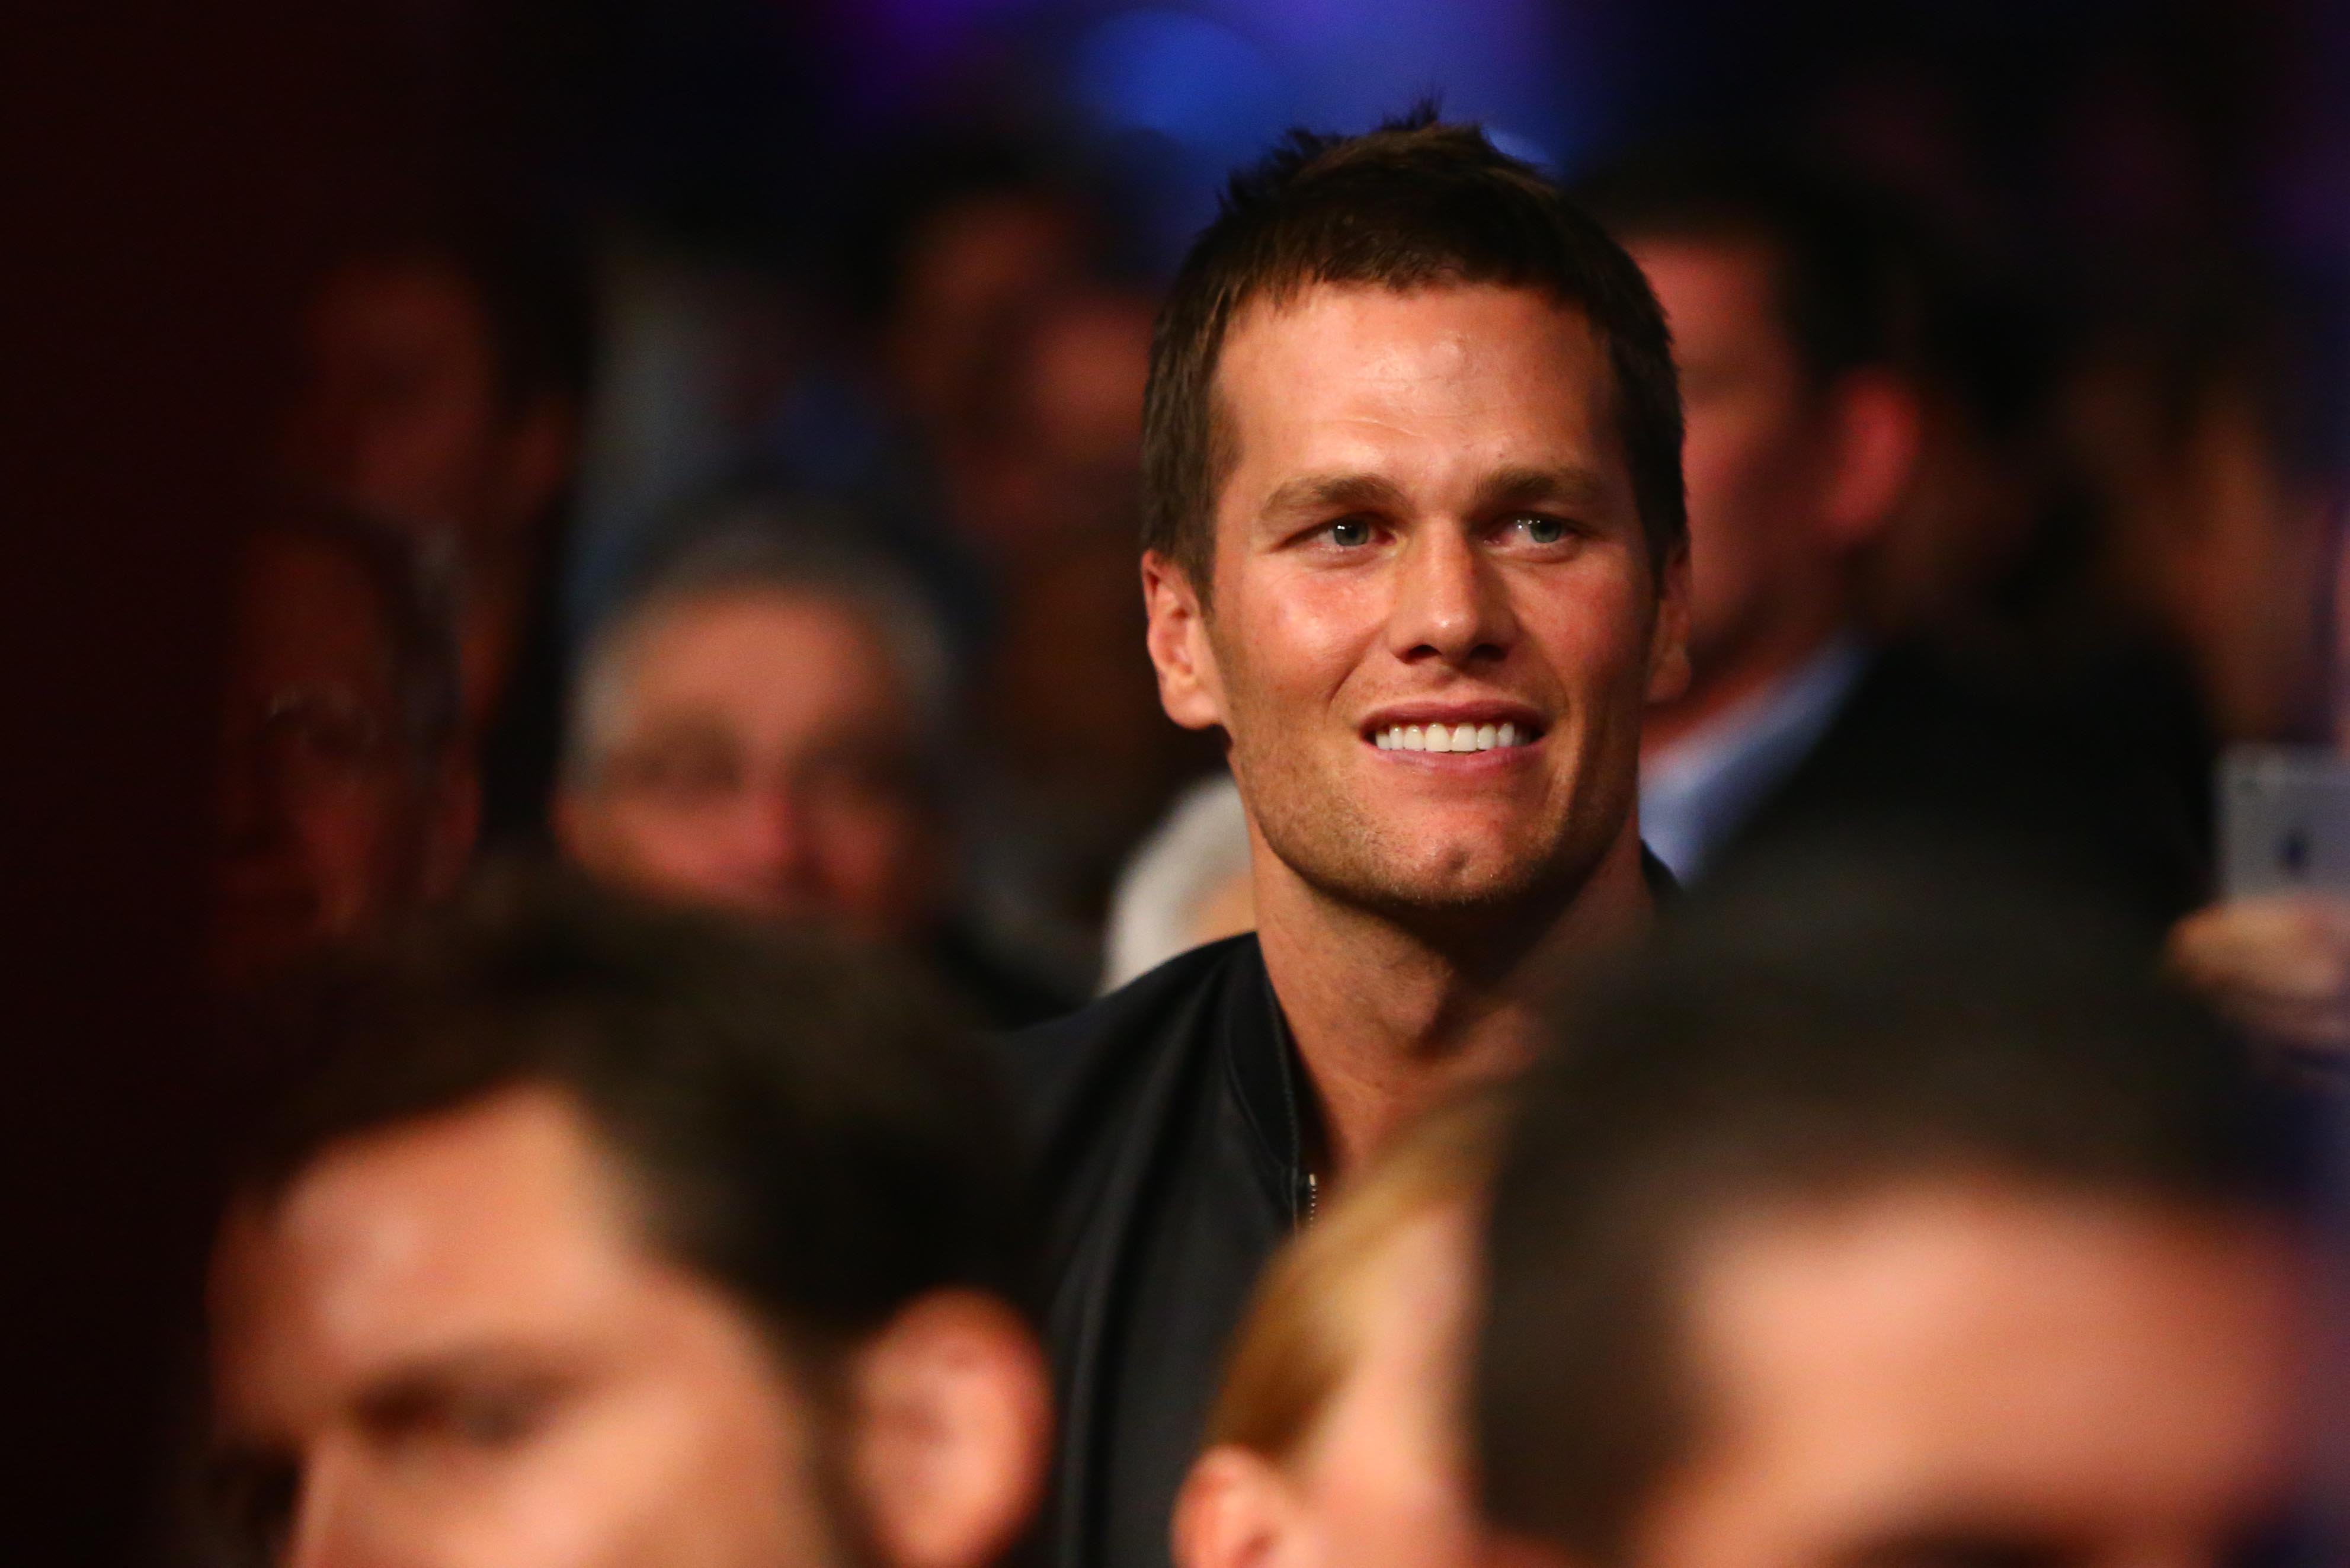 Tom Brady dodges DeflateGate questions in 1st public appearance since report